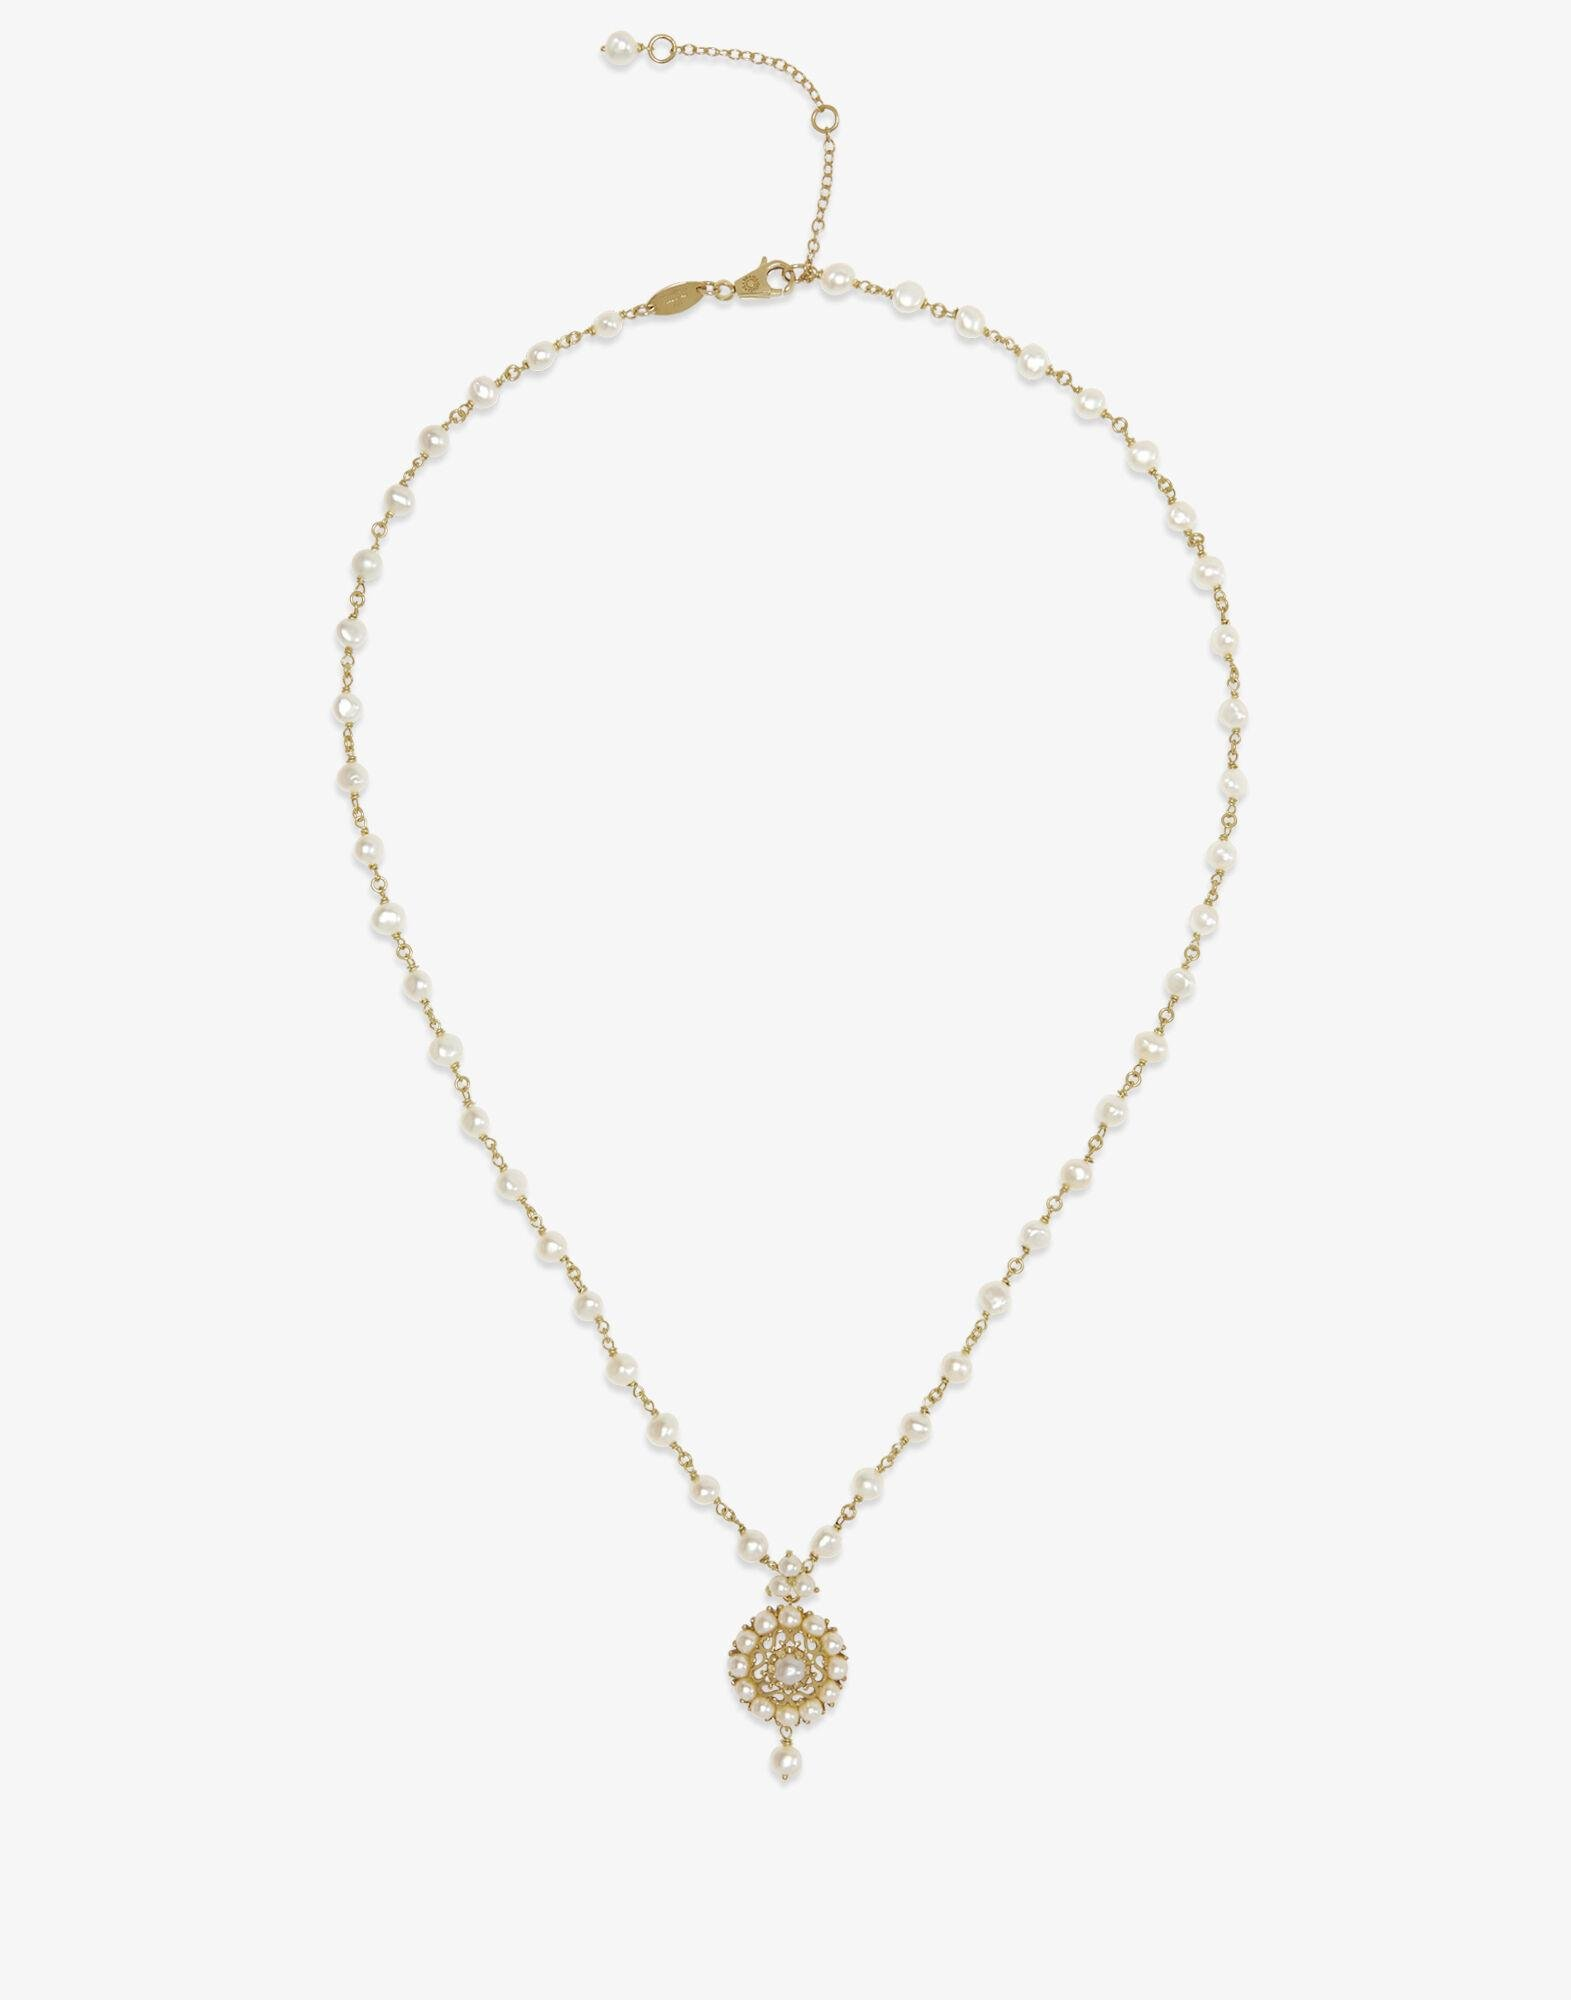 Romance necklace in yellow gold with pearls